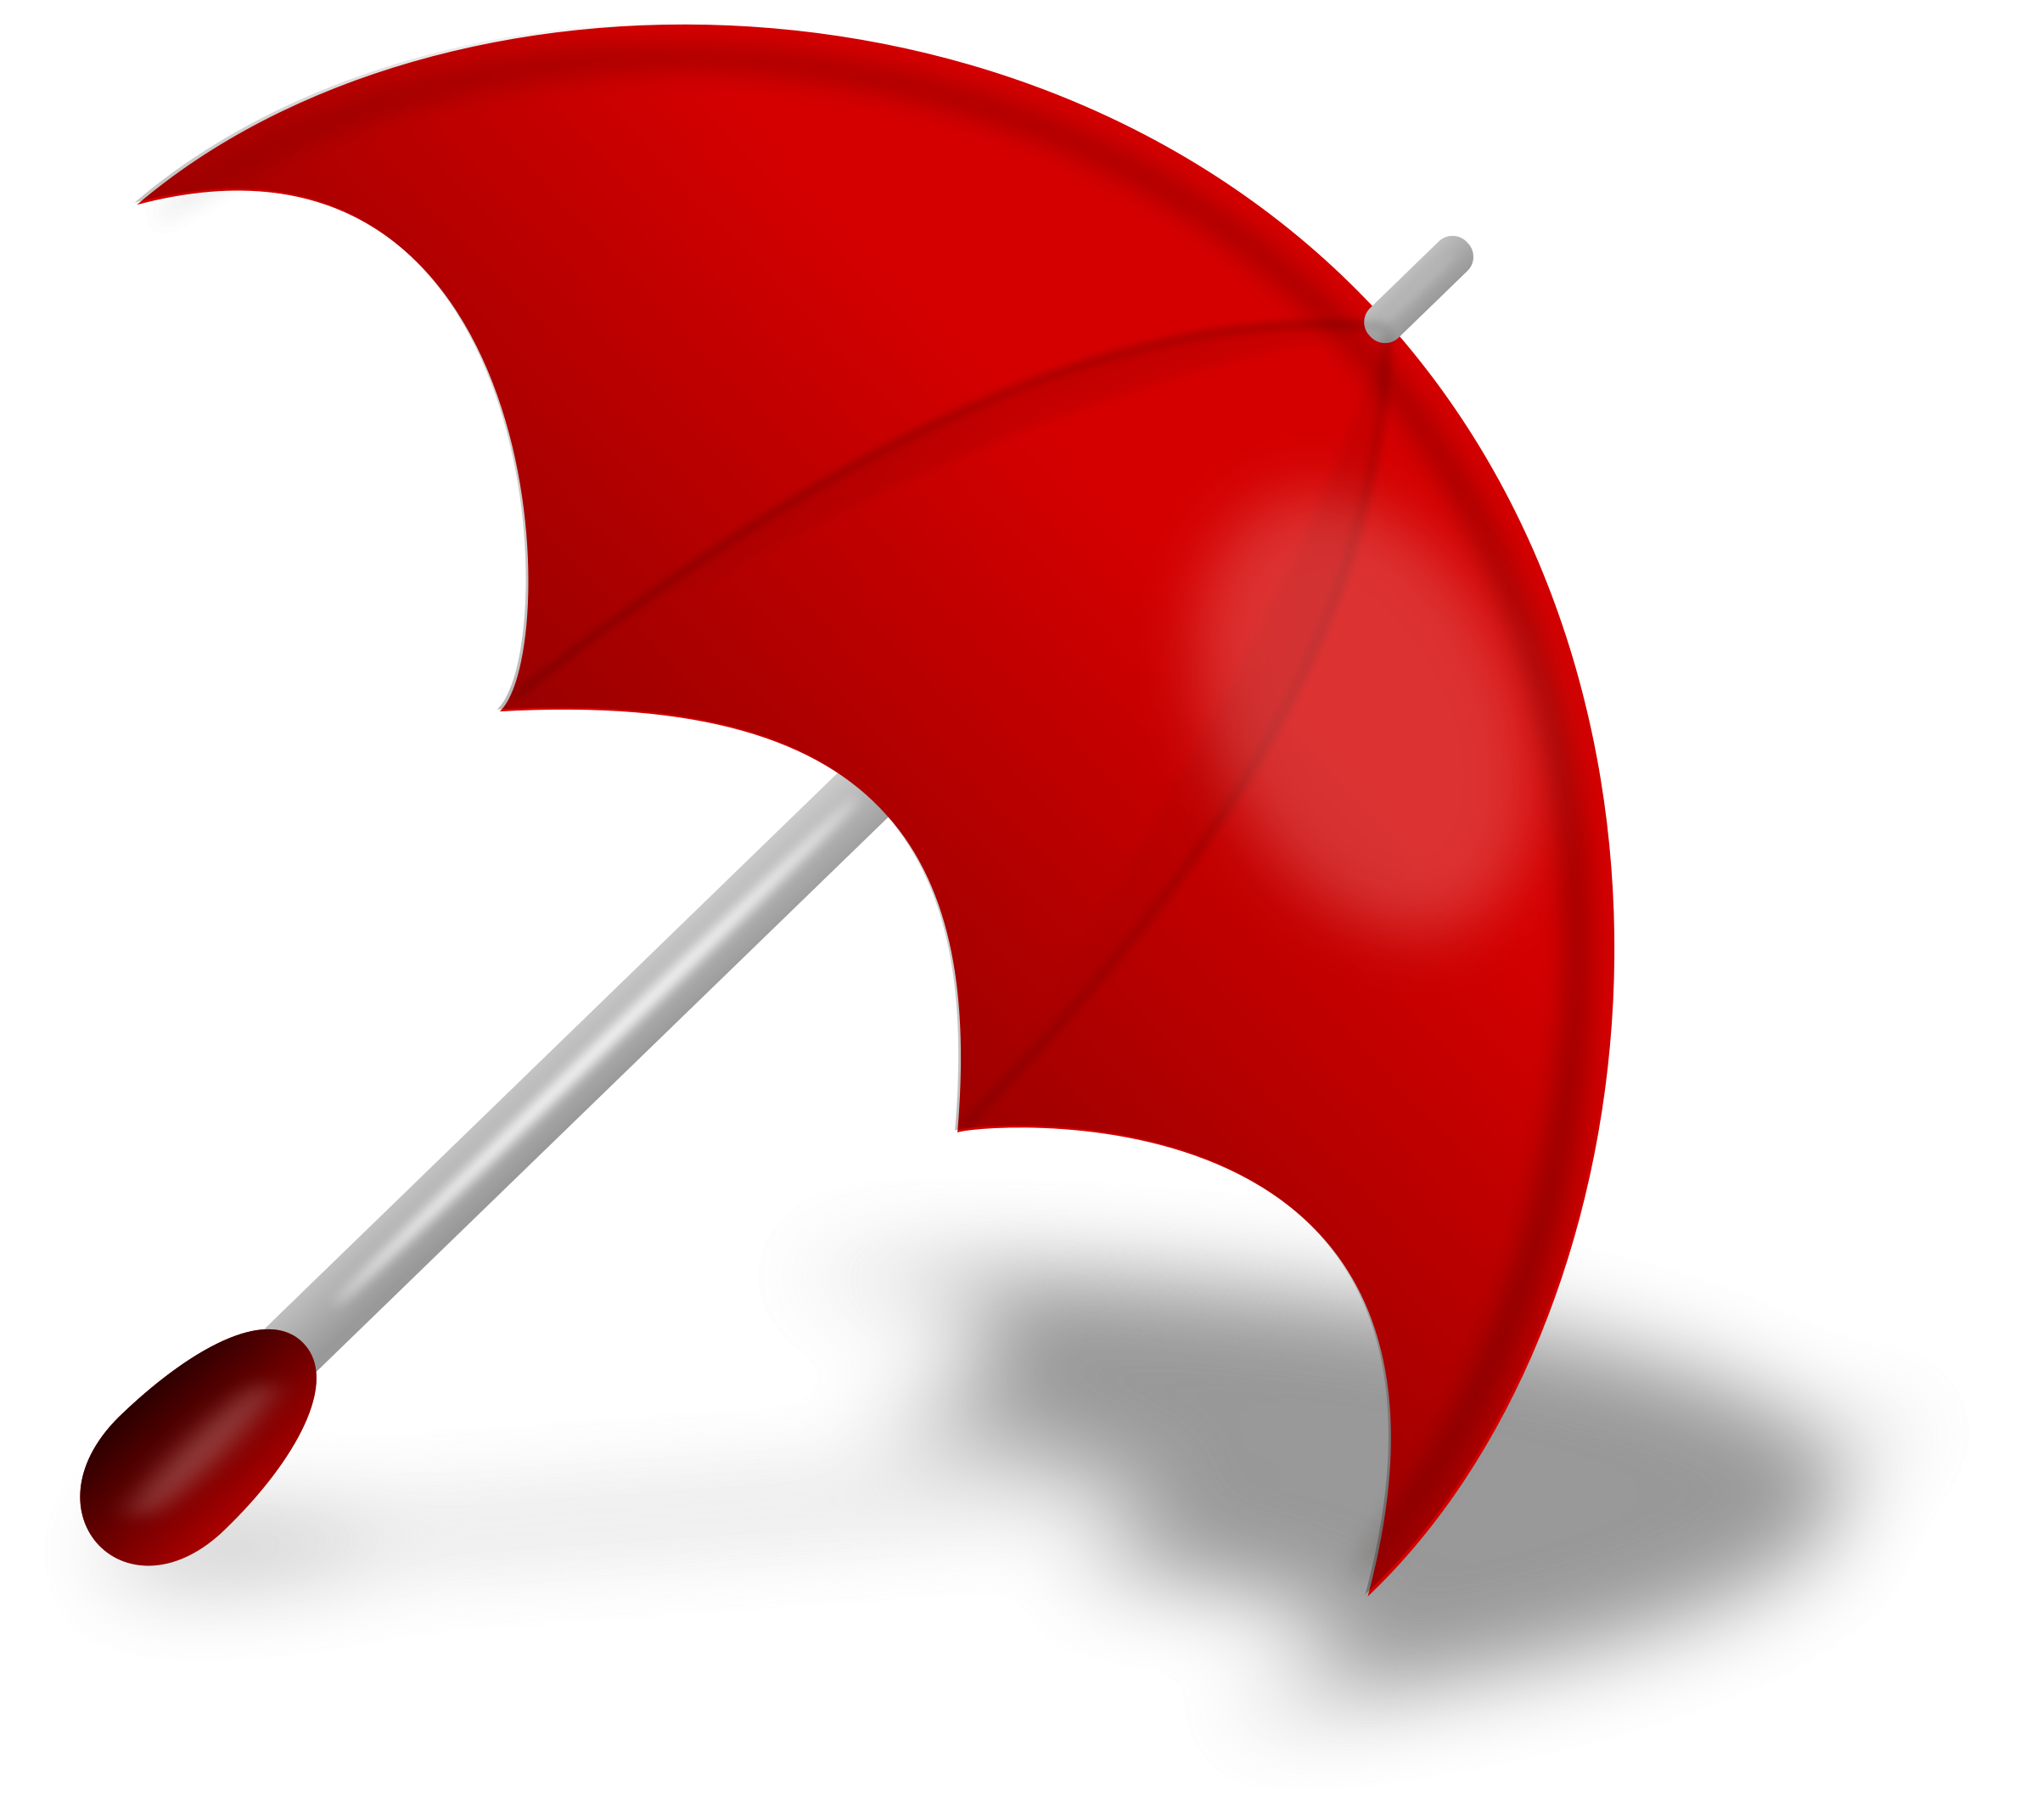 7 clipart umbrella. Red panda free images